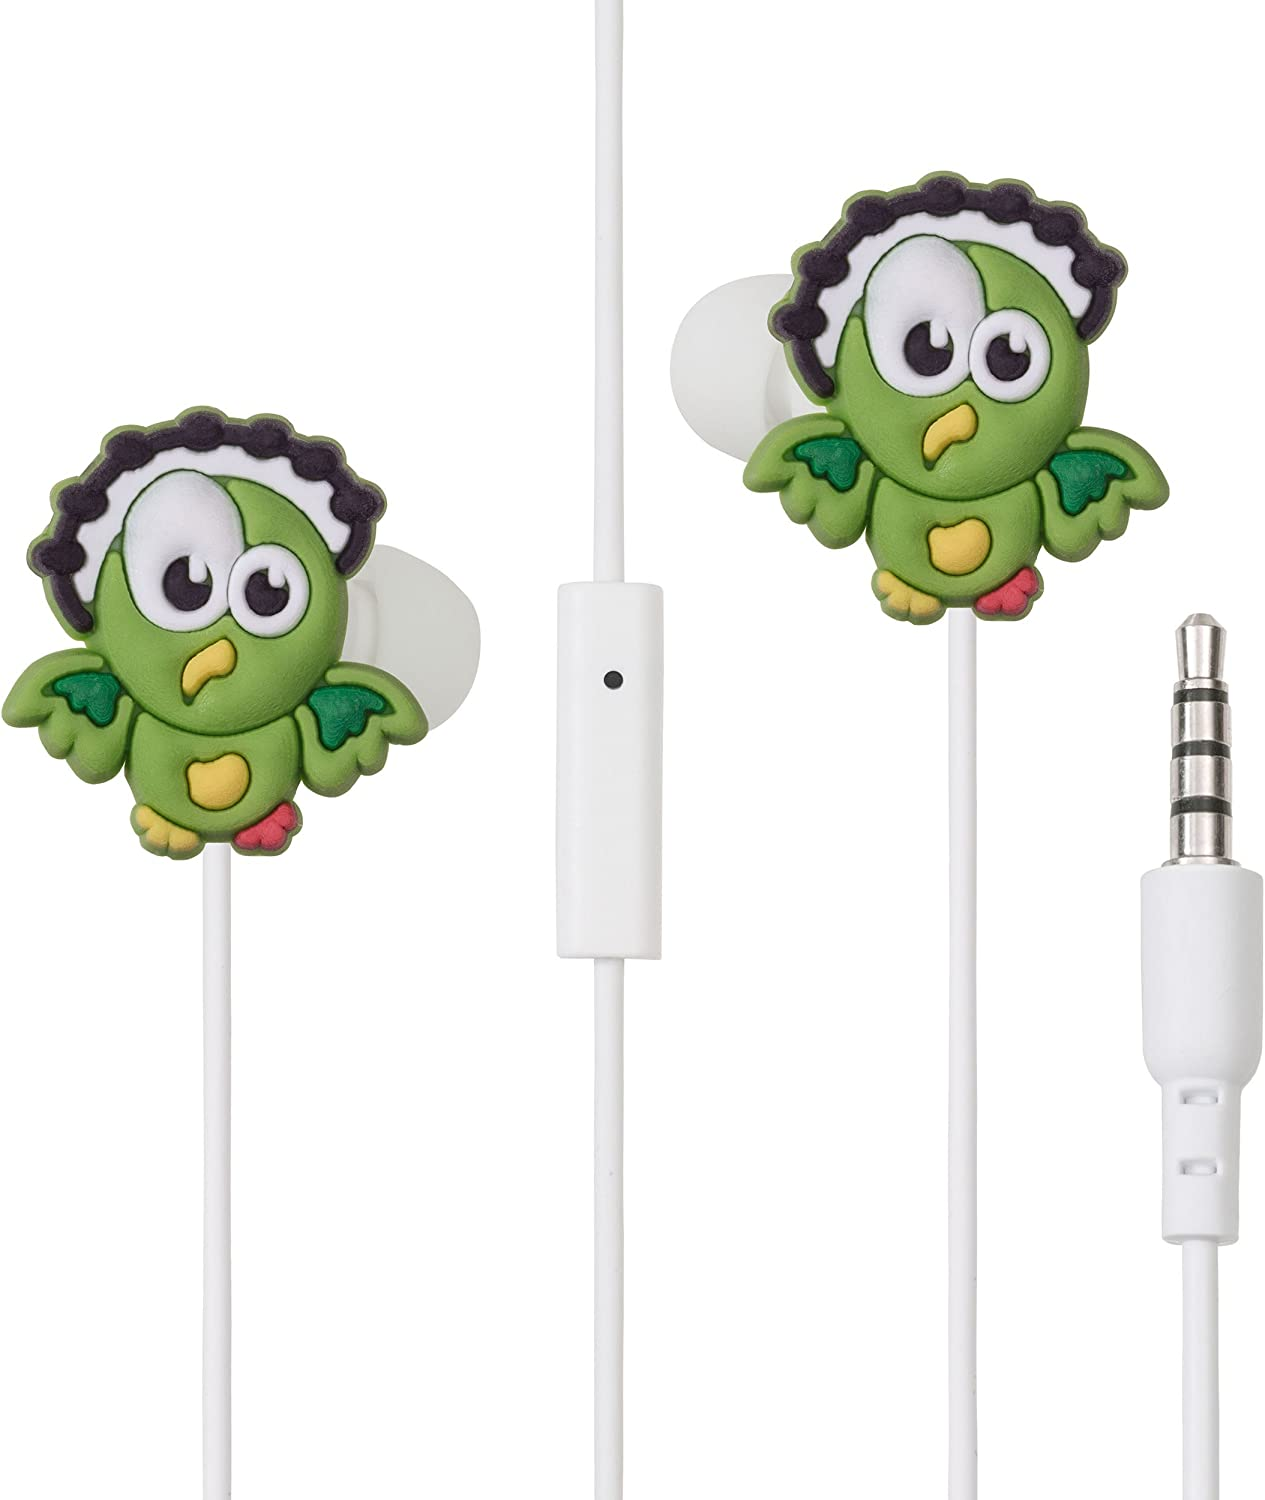 Bird in-Ear Green Headphones for Girls with Mic by Lolachat. Colorful Earphones for iPhone Android Apple Smartphones MP3 - Low Cost